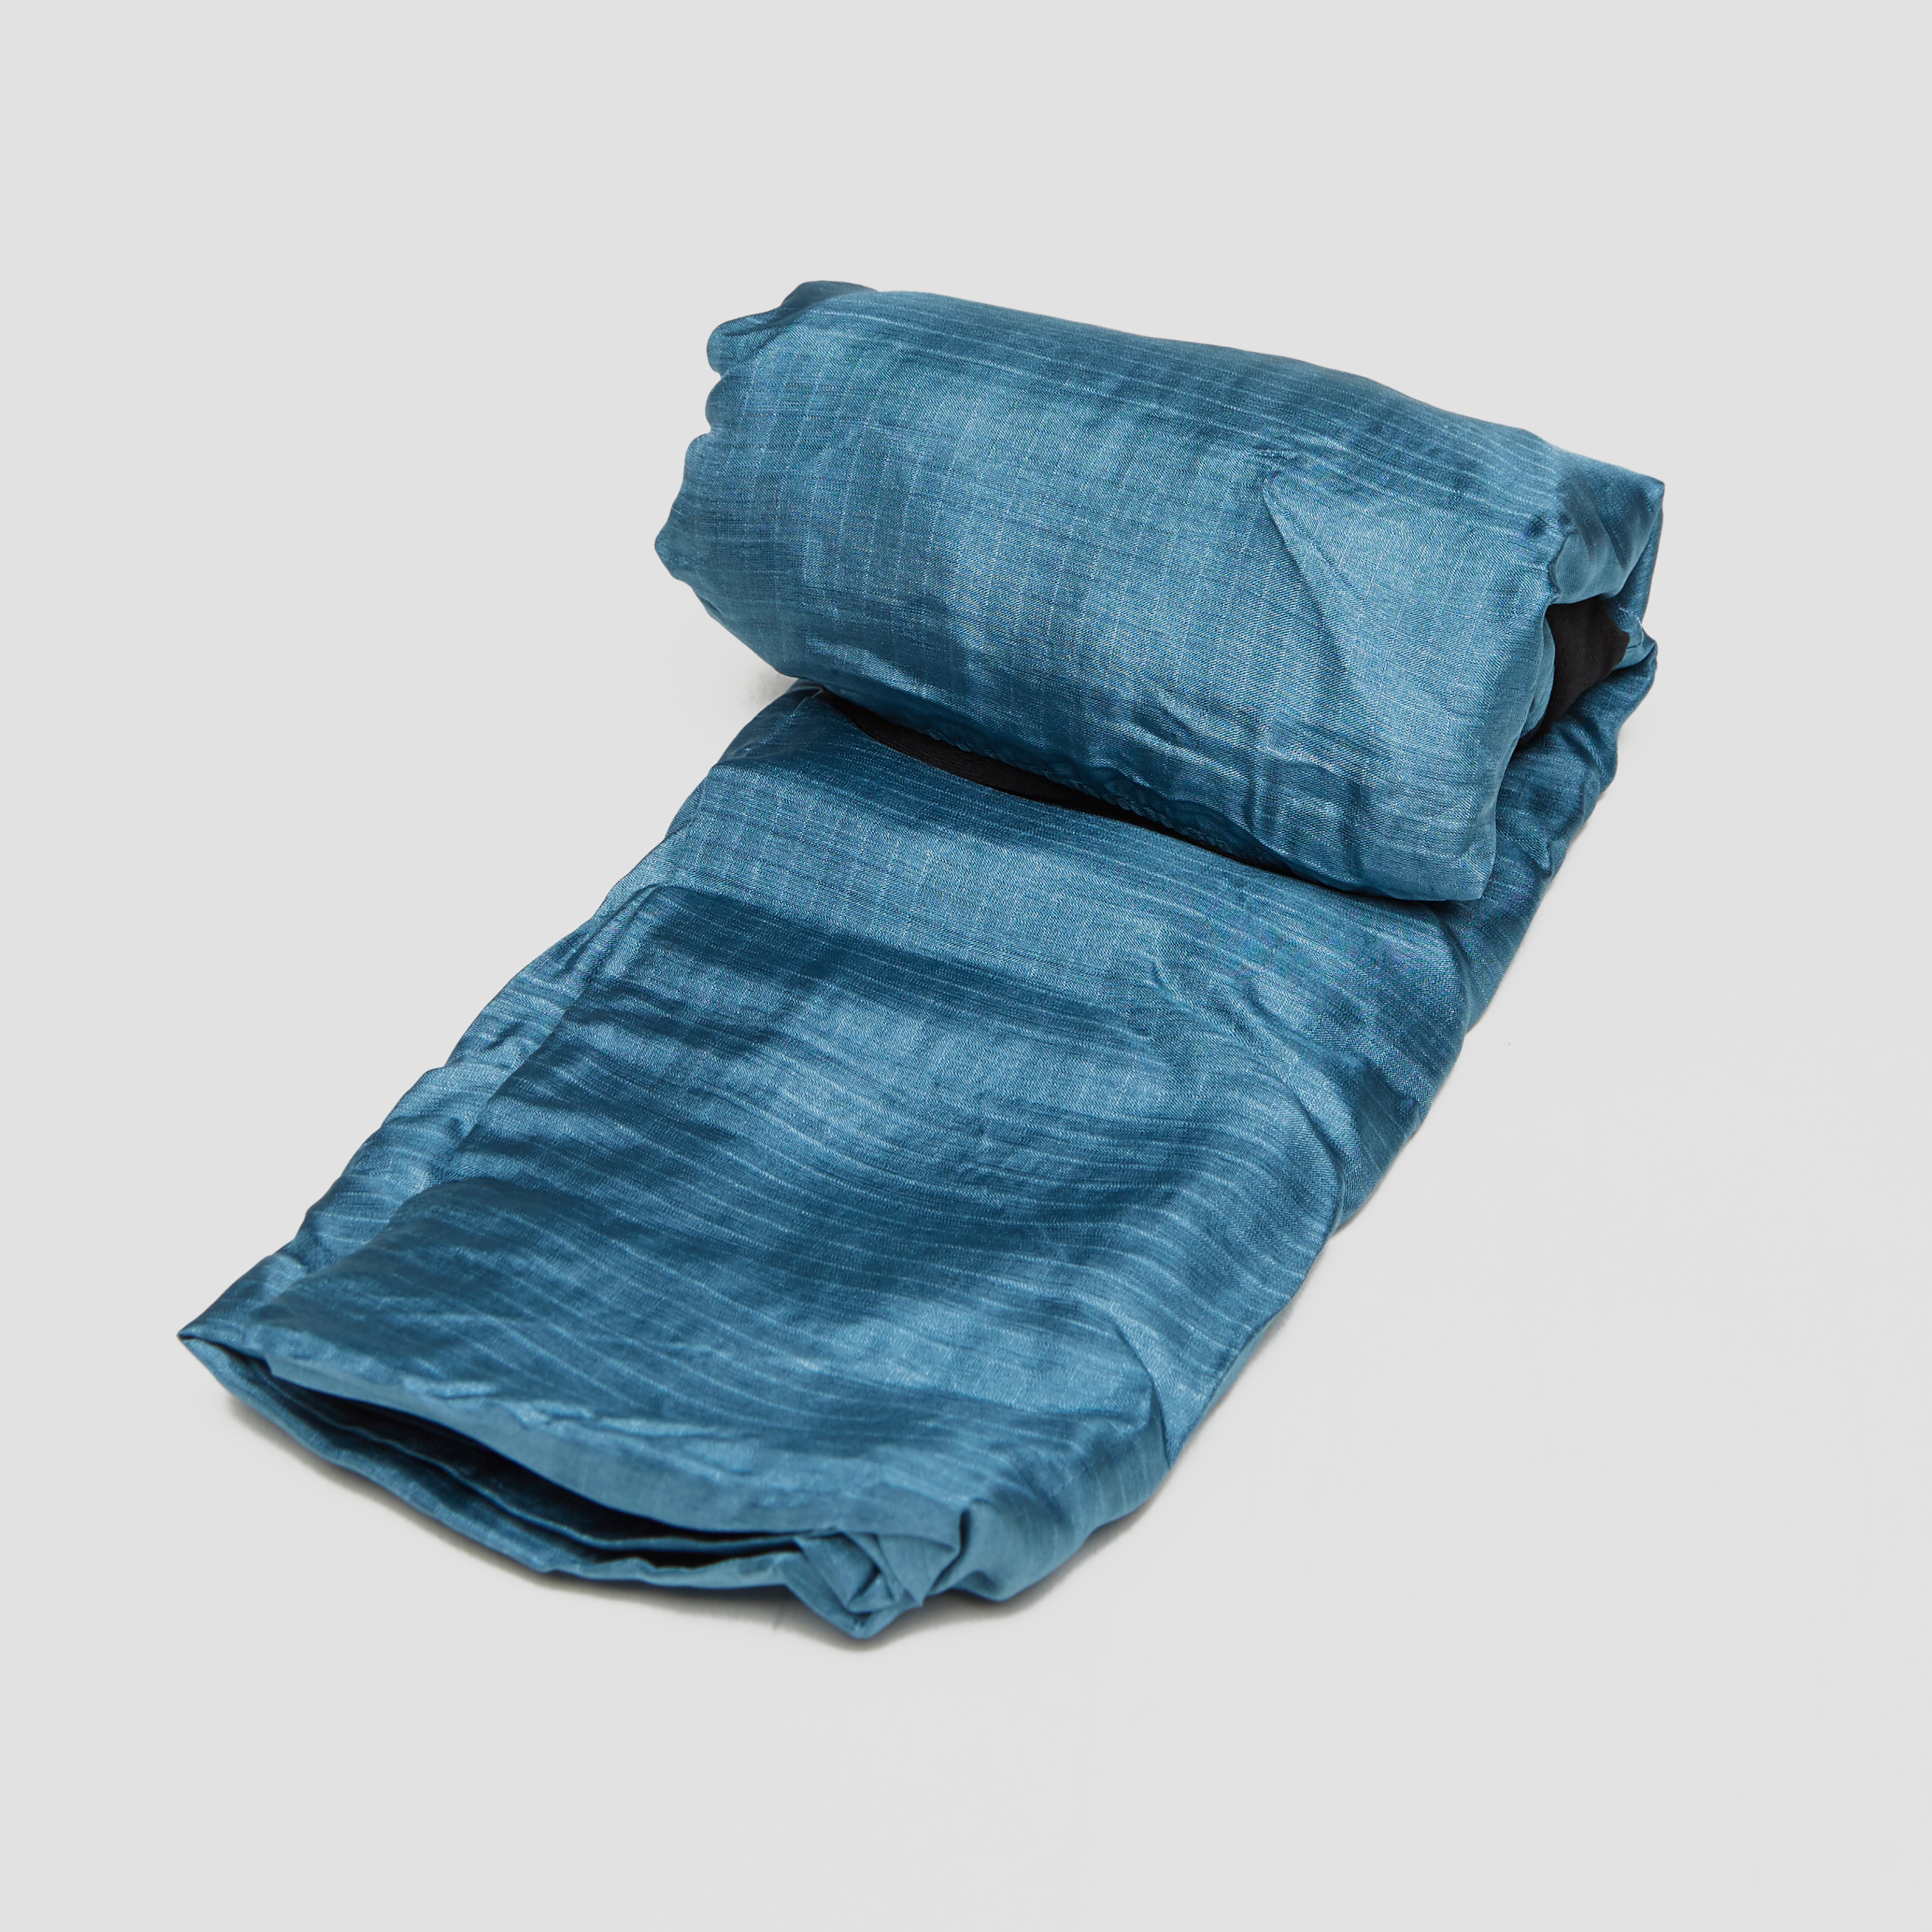 SEA TO SUMMIT SILK LINER WITH STRETCH PANEL BLAUW